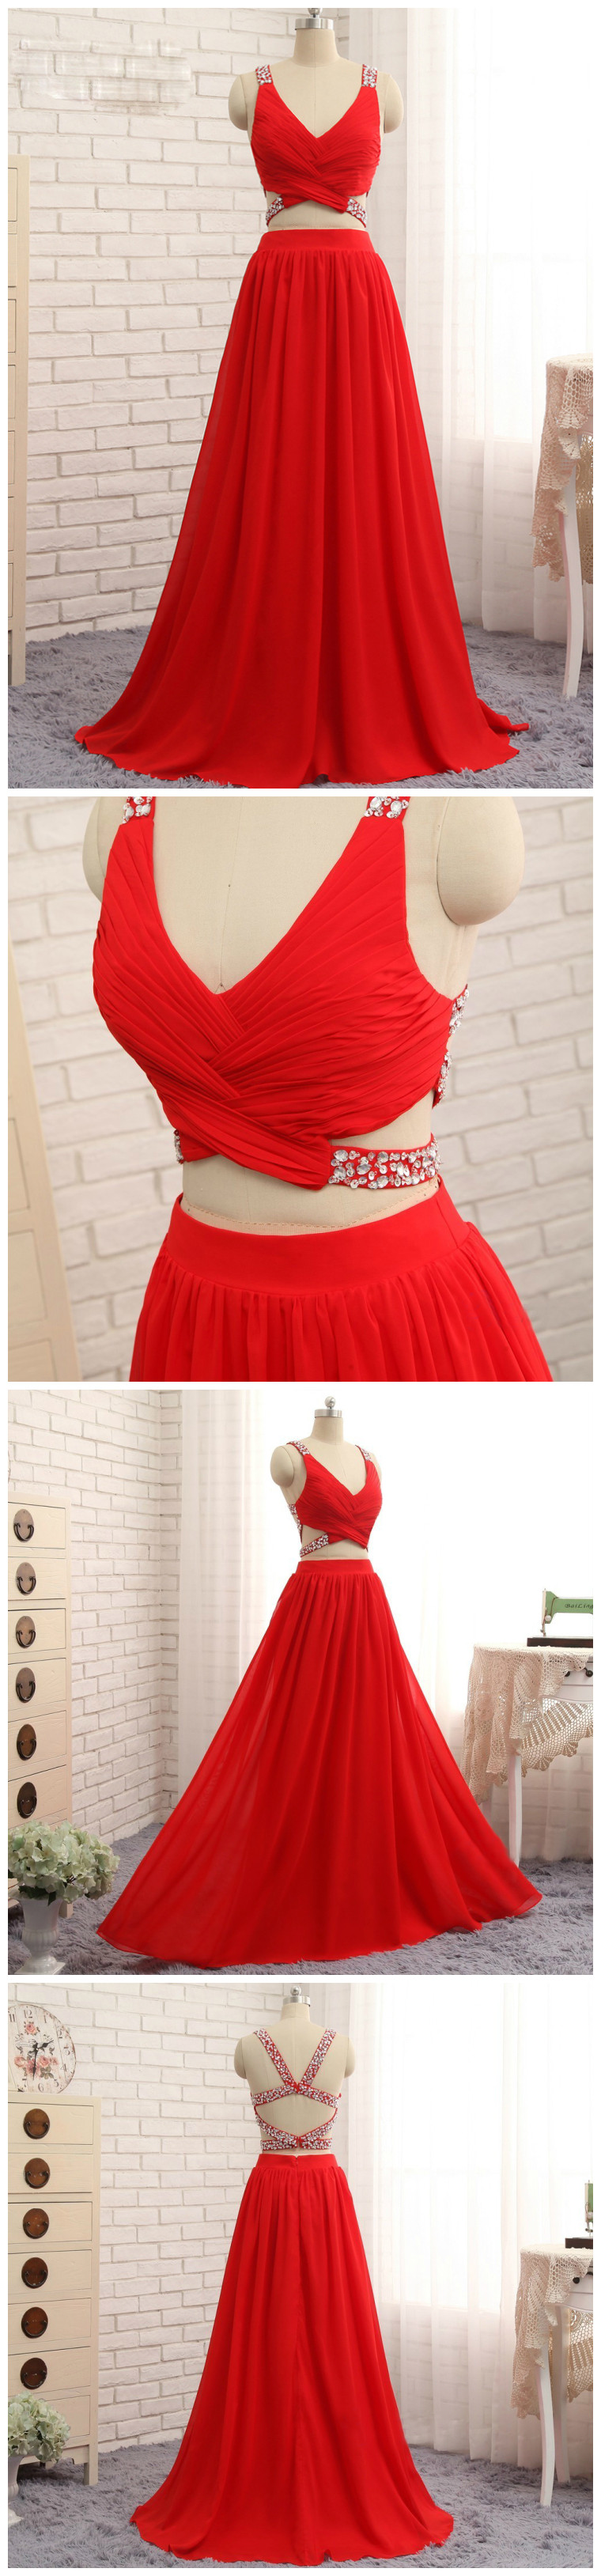 Chic pieces aline vneck red beading chicffon long prom dress